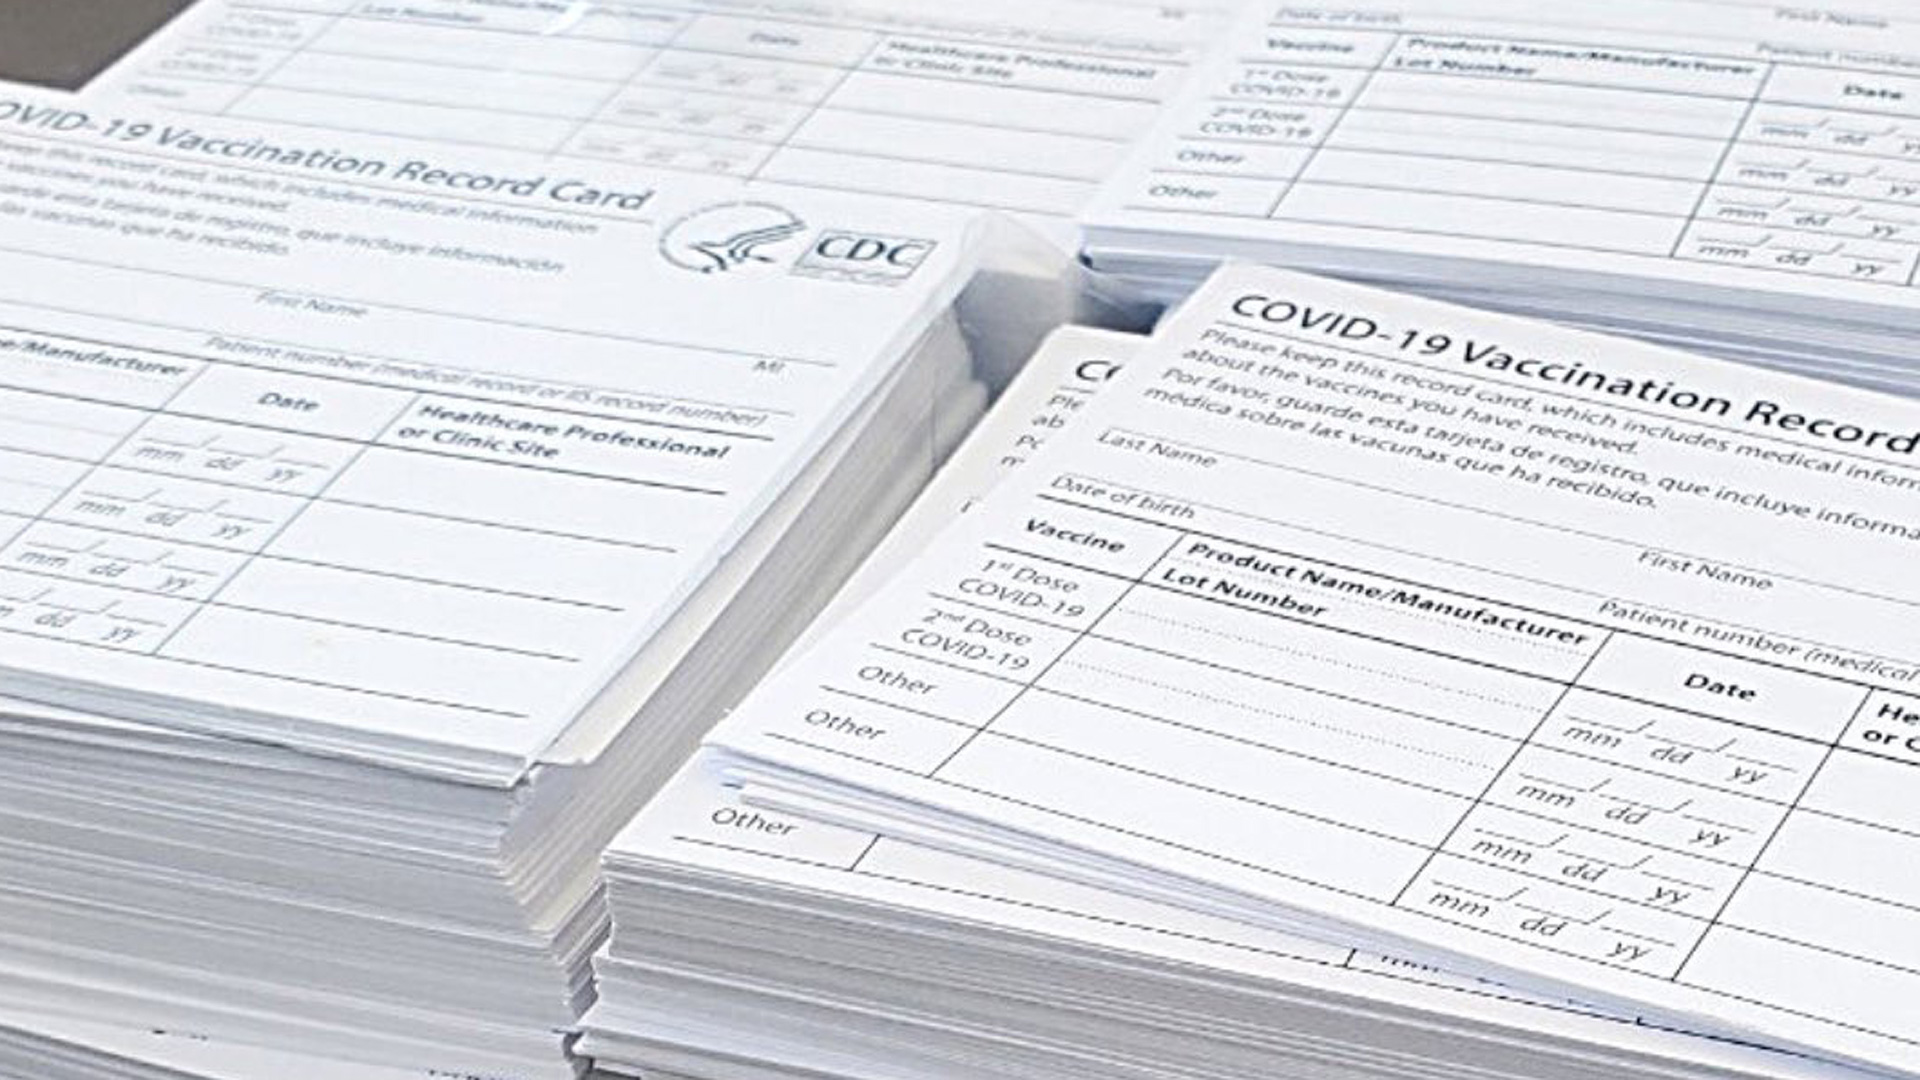 Blank COVID-19 vaccine cards are seen in a photo released by the La Verne Police Department on June 8, 2021.